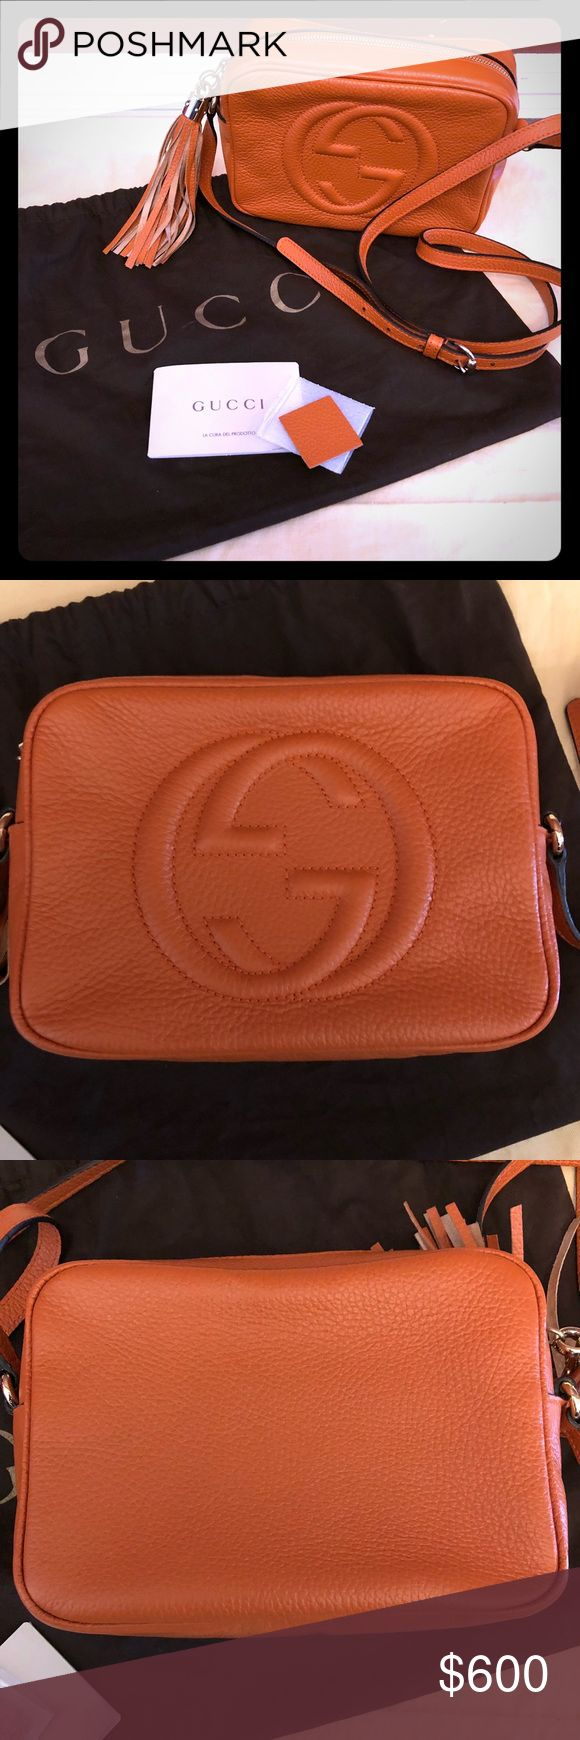 Gucci soho disco crossbody bag Handy little pouch by Gucci. It is in good preloved condition. I used it for UT football games & events🤗 But it really is a great pop of color that can be used year round!! Listing includes: bag, original dust bag, leather color swatch & its inserts (tag/booklet) ***will not discus price in comments but will accept offers!! Please use offer feature🎃 Gucci Bags Crossbody Bags